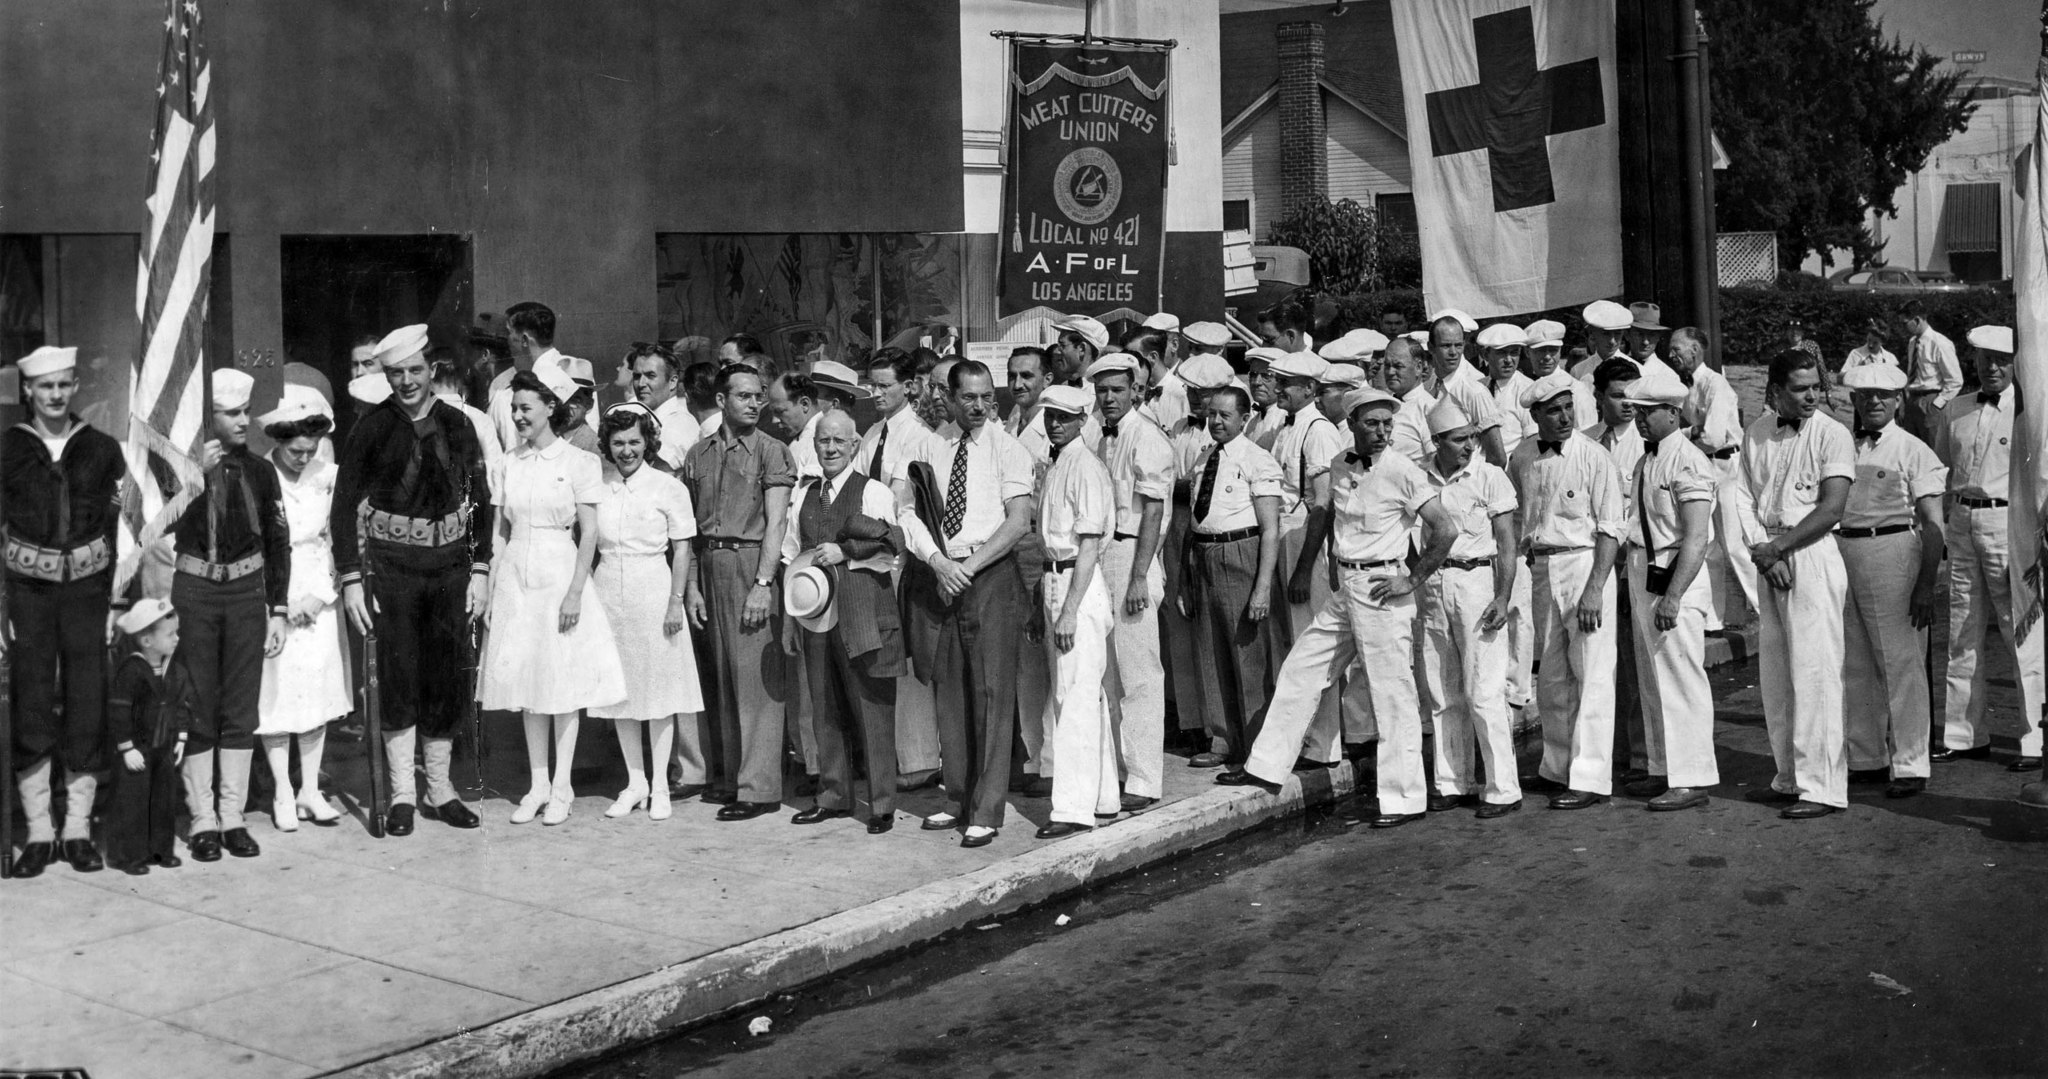 Sep. 7, 942: Members of the Meat Cutters Union, Local No. 421, line up at the door of Blood Bank dur